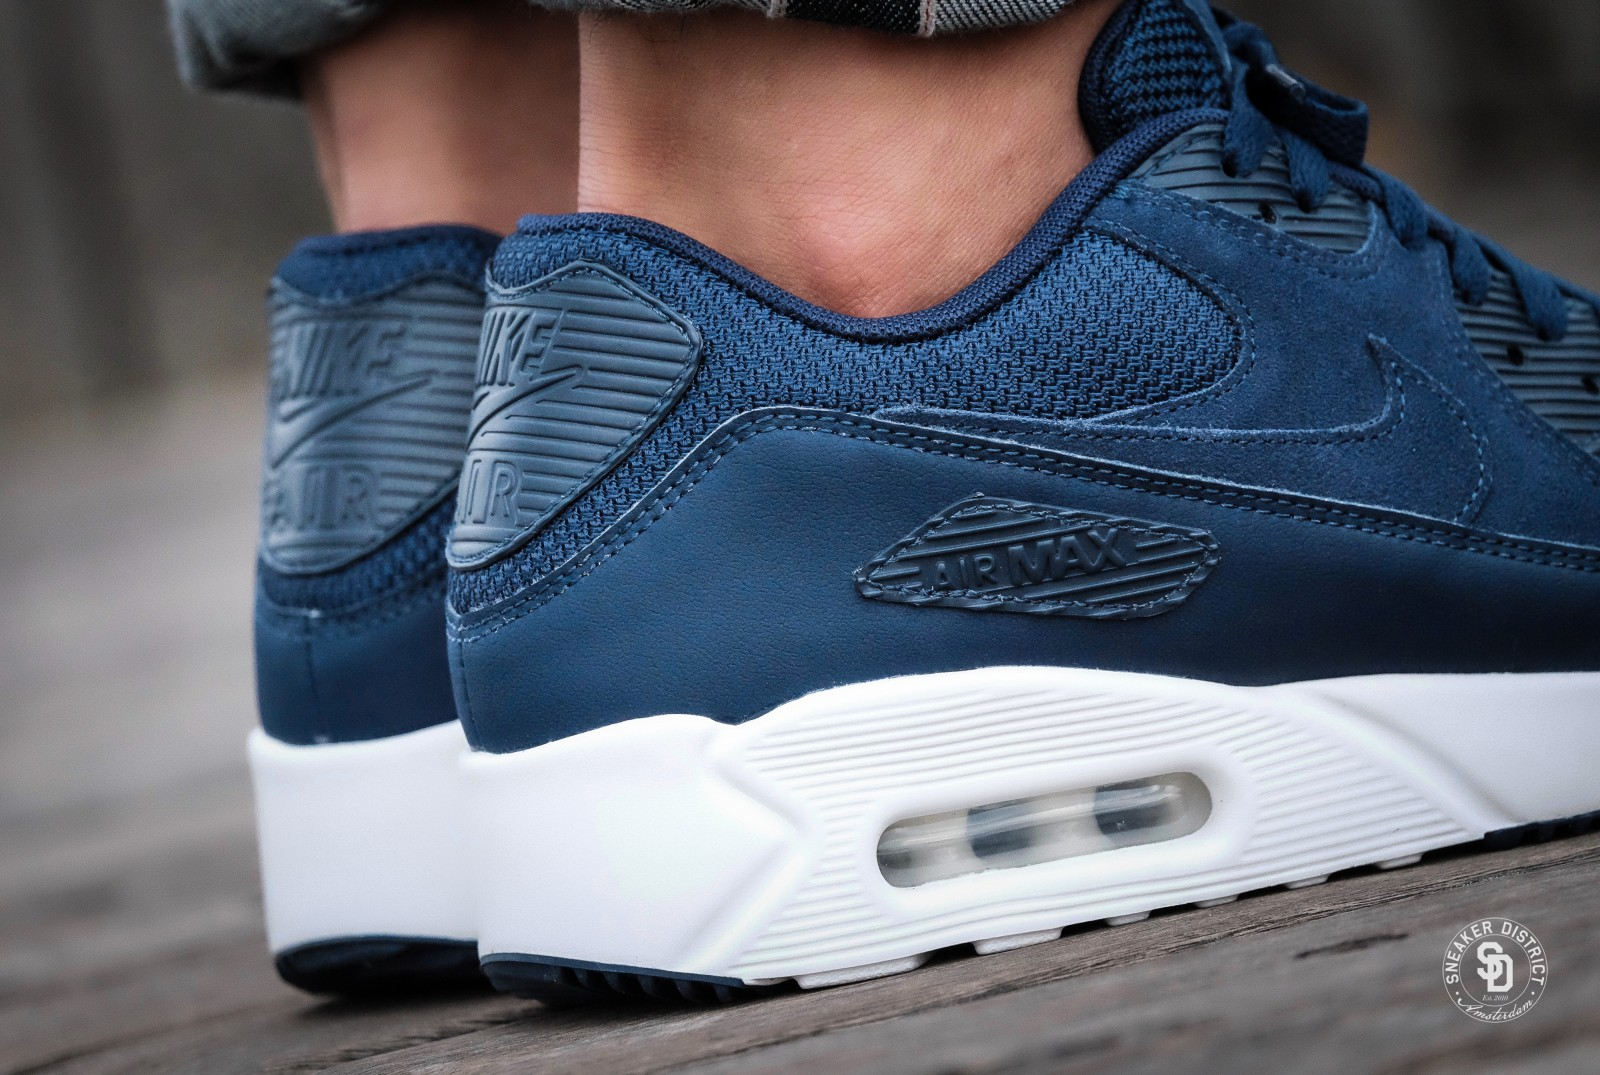 nike air max 90 ultra 2.0 white and blue shoes